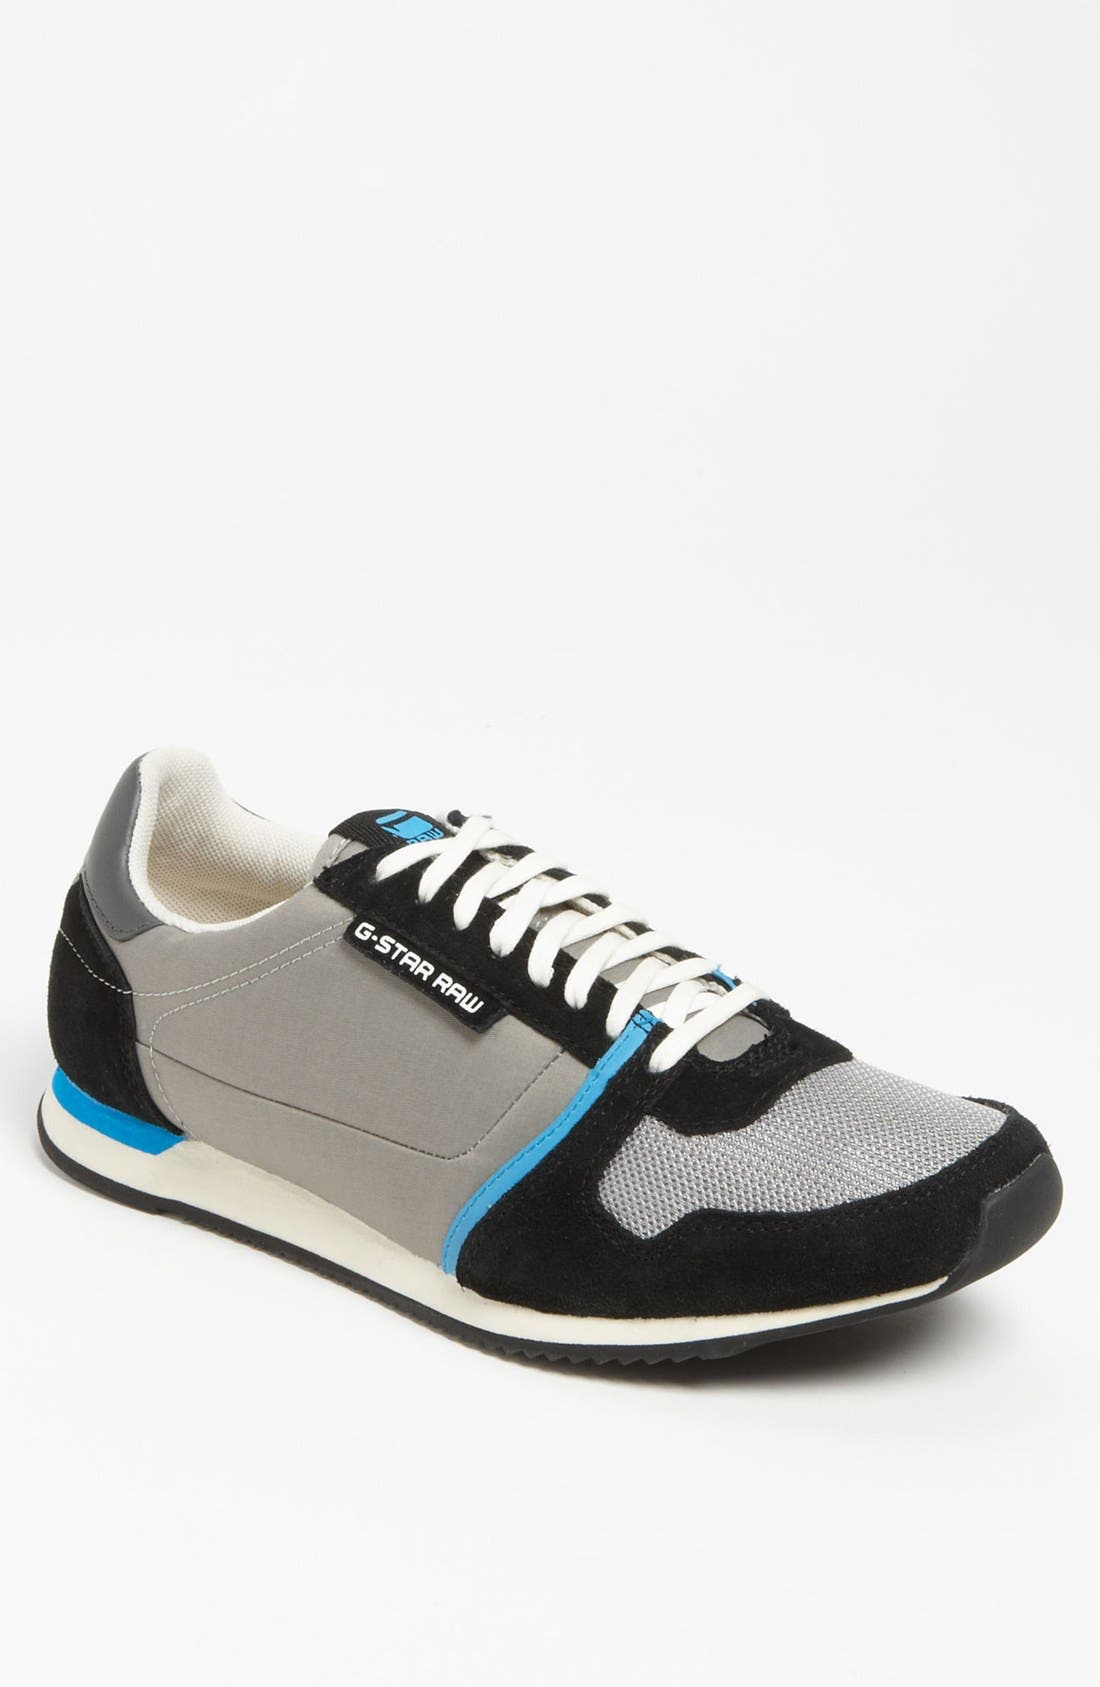 Alternate Image 1 Selected - G-Star Raw 'Track Futura' Sneaker (Men)